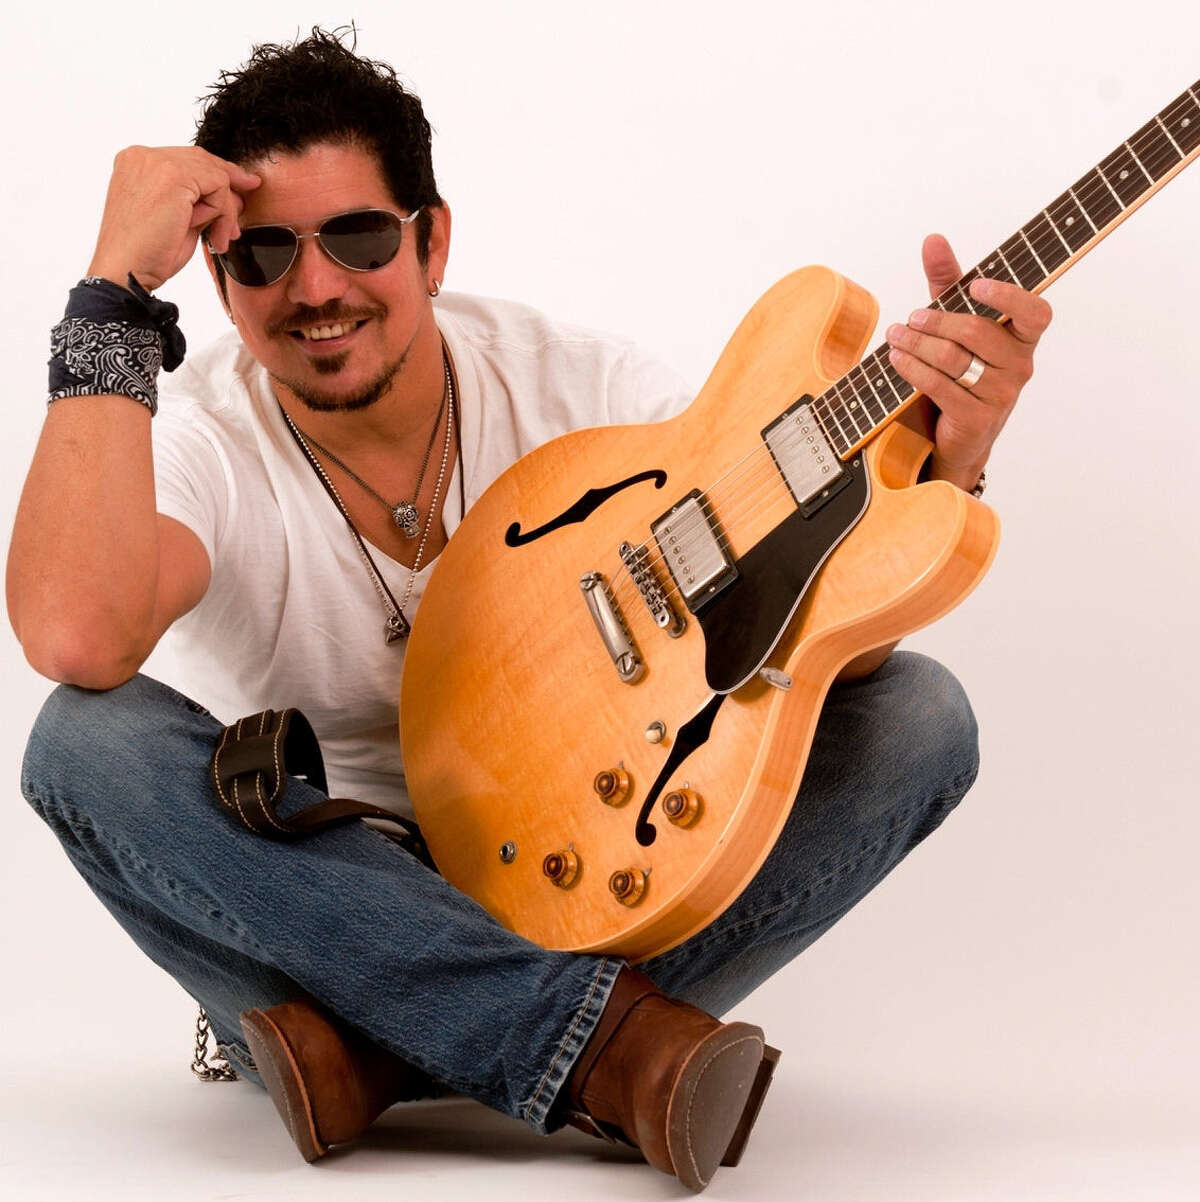 High Horse Lounge 415 Milan San Antonio guitarist/songwriter/band leader Ruben V will perform from 10 p.m. to 1 a.m. Christmas Day.